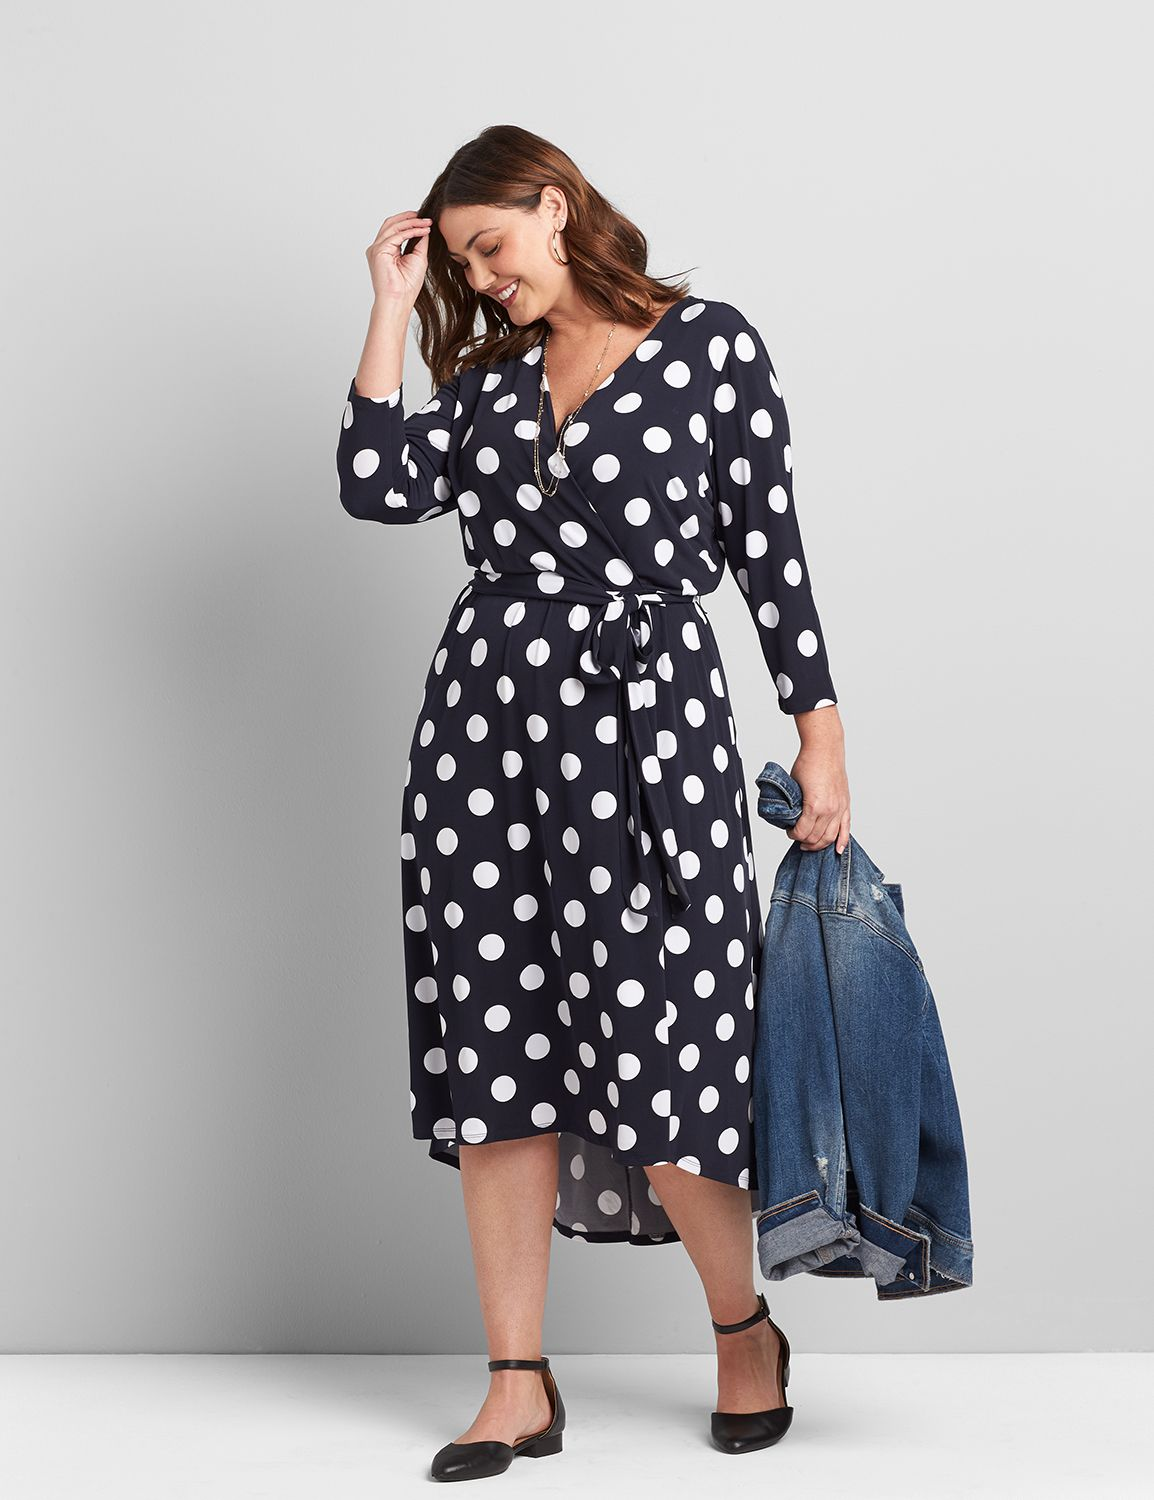 Lane Bryant Women's